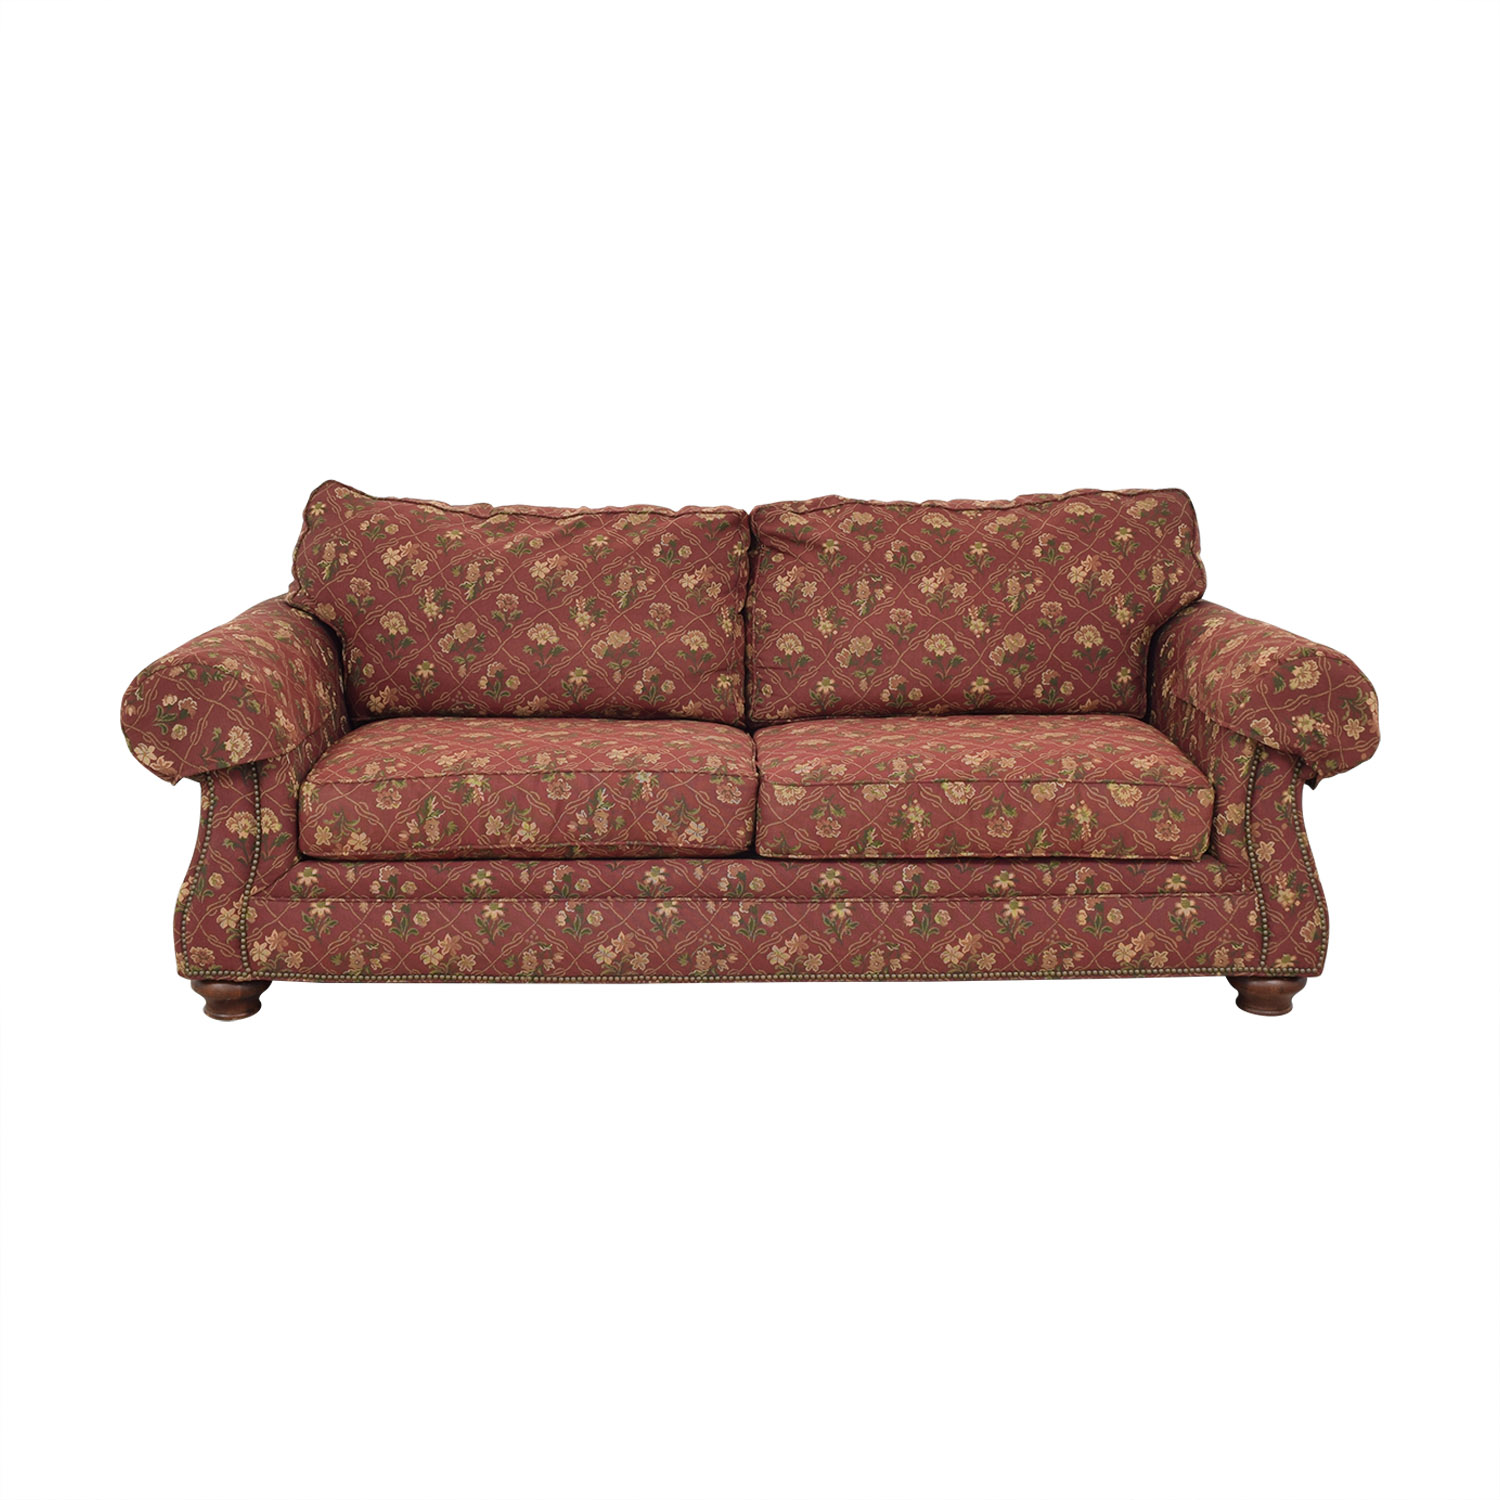 Broyhill Furniture Broyhill Furniture Laramie Sofa for sale